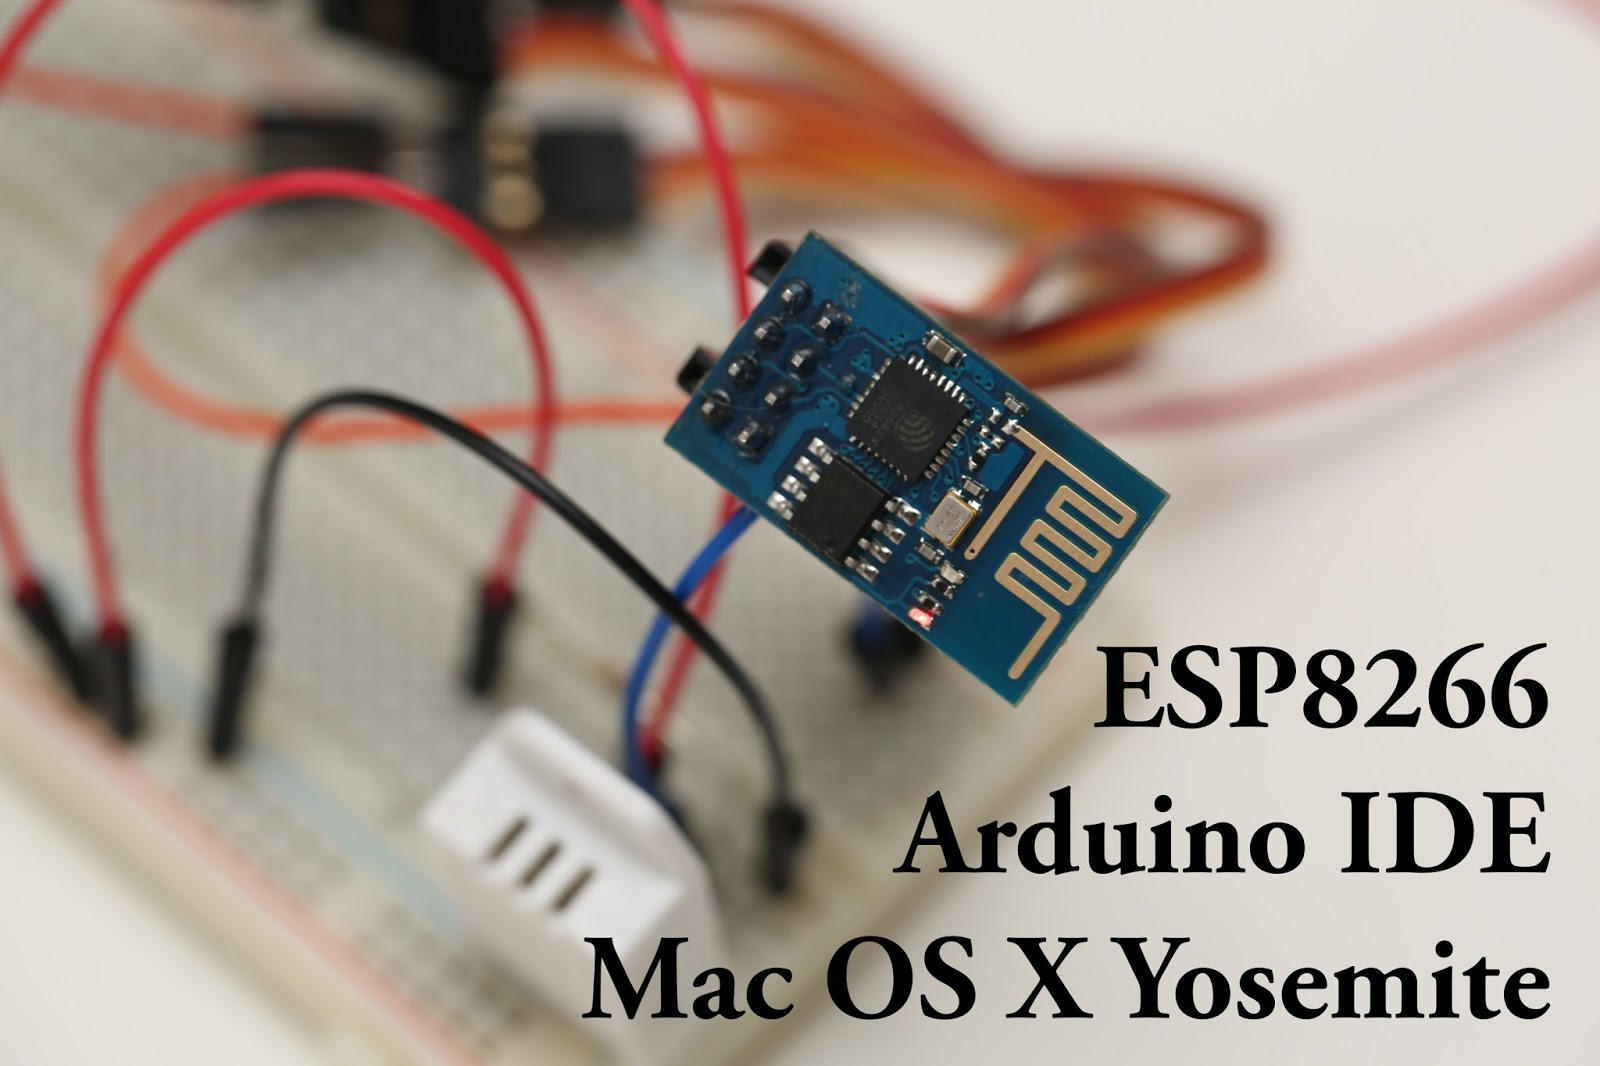 Embedded lab esp arduino ide on mac os yosemite